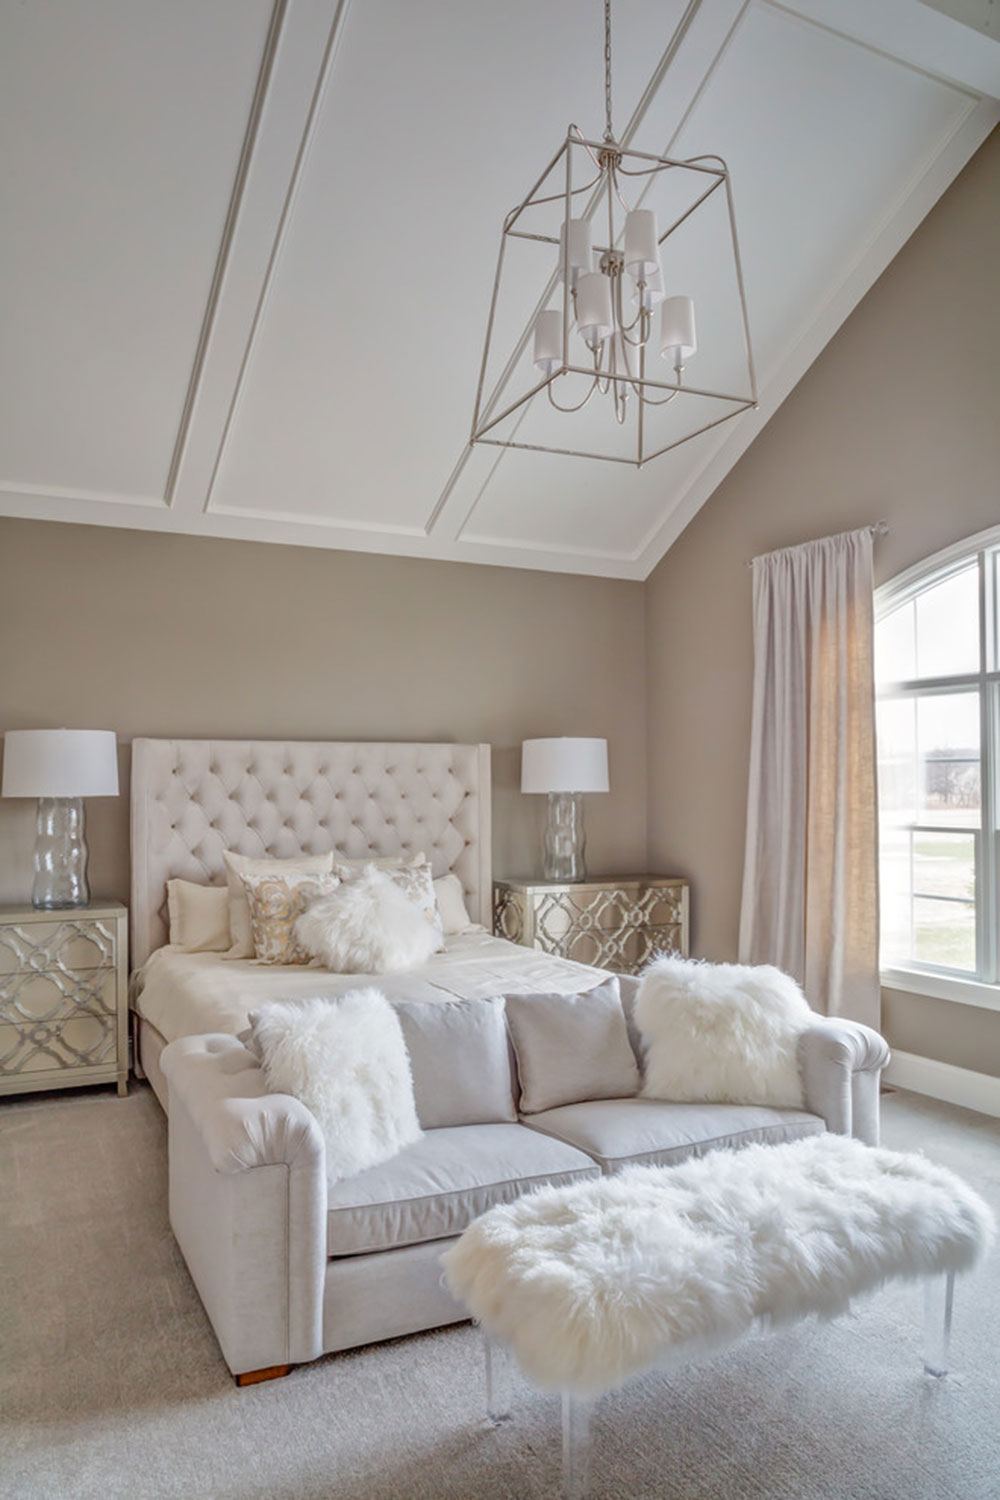 Sweet-Dreams-With-These-Beautiful-Headboard-Design-Ideen2 Beautiful Headboard Design Ideas